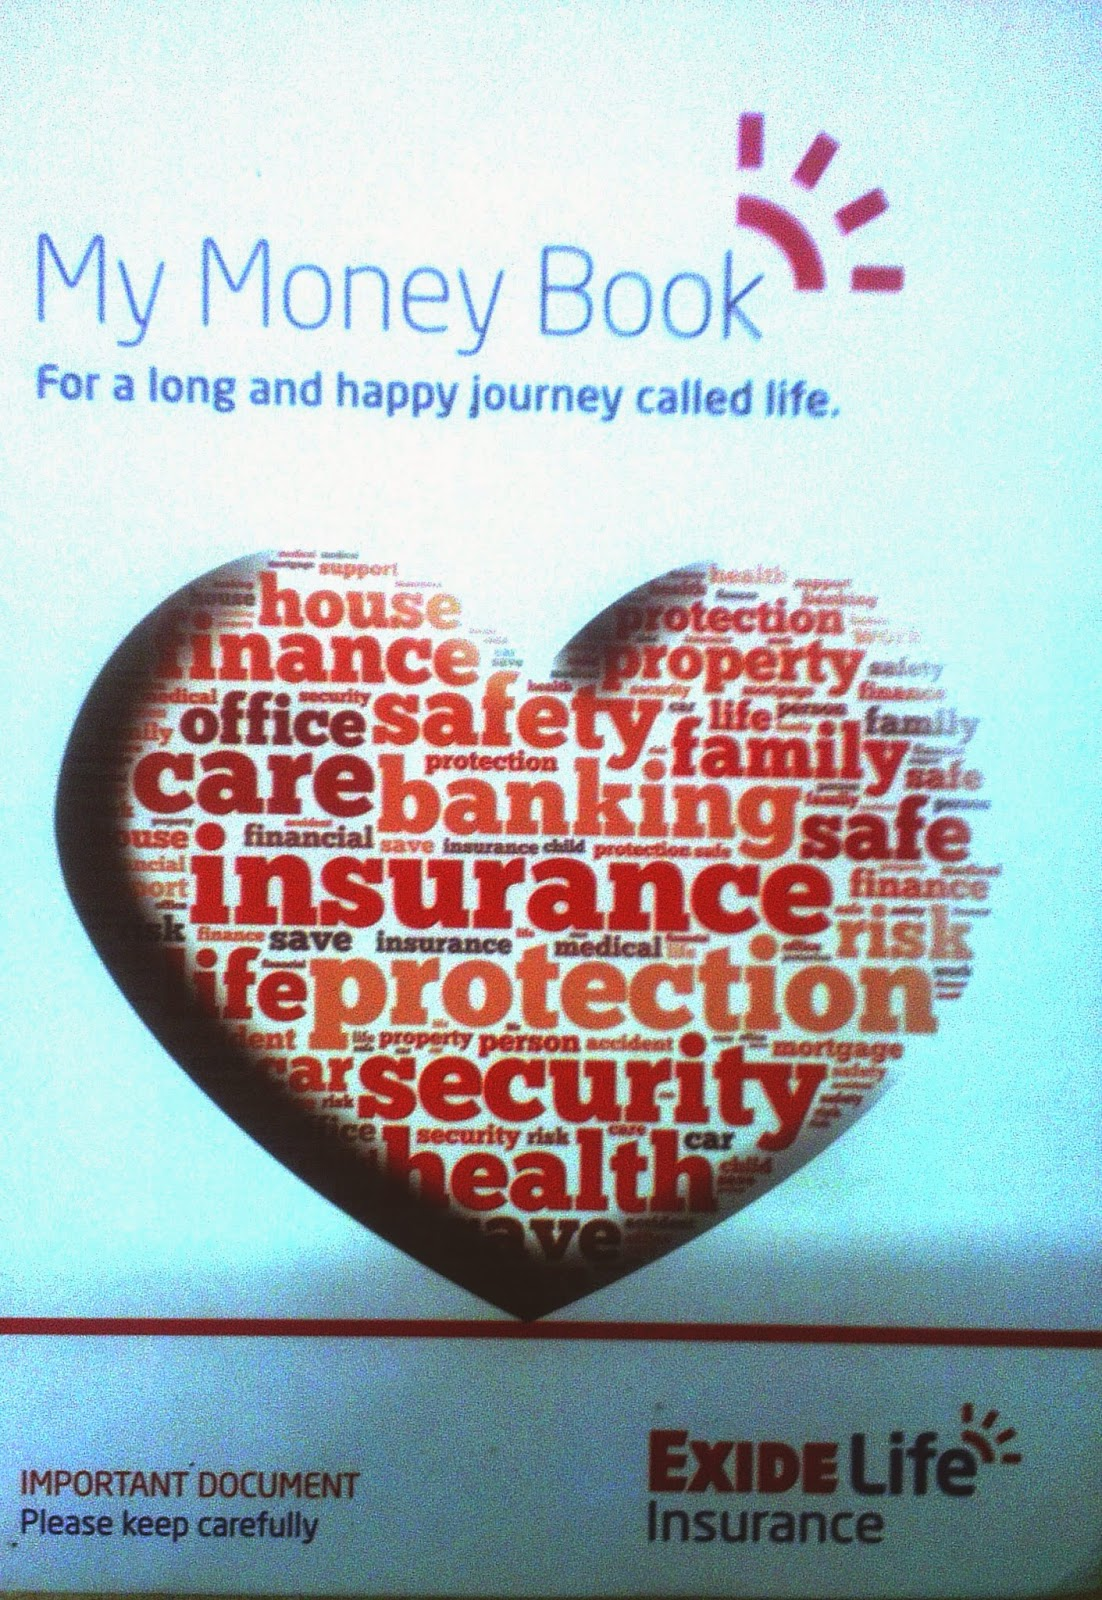 My Money Book for Life